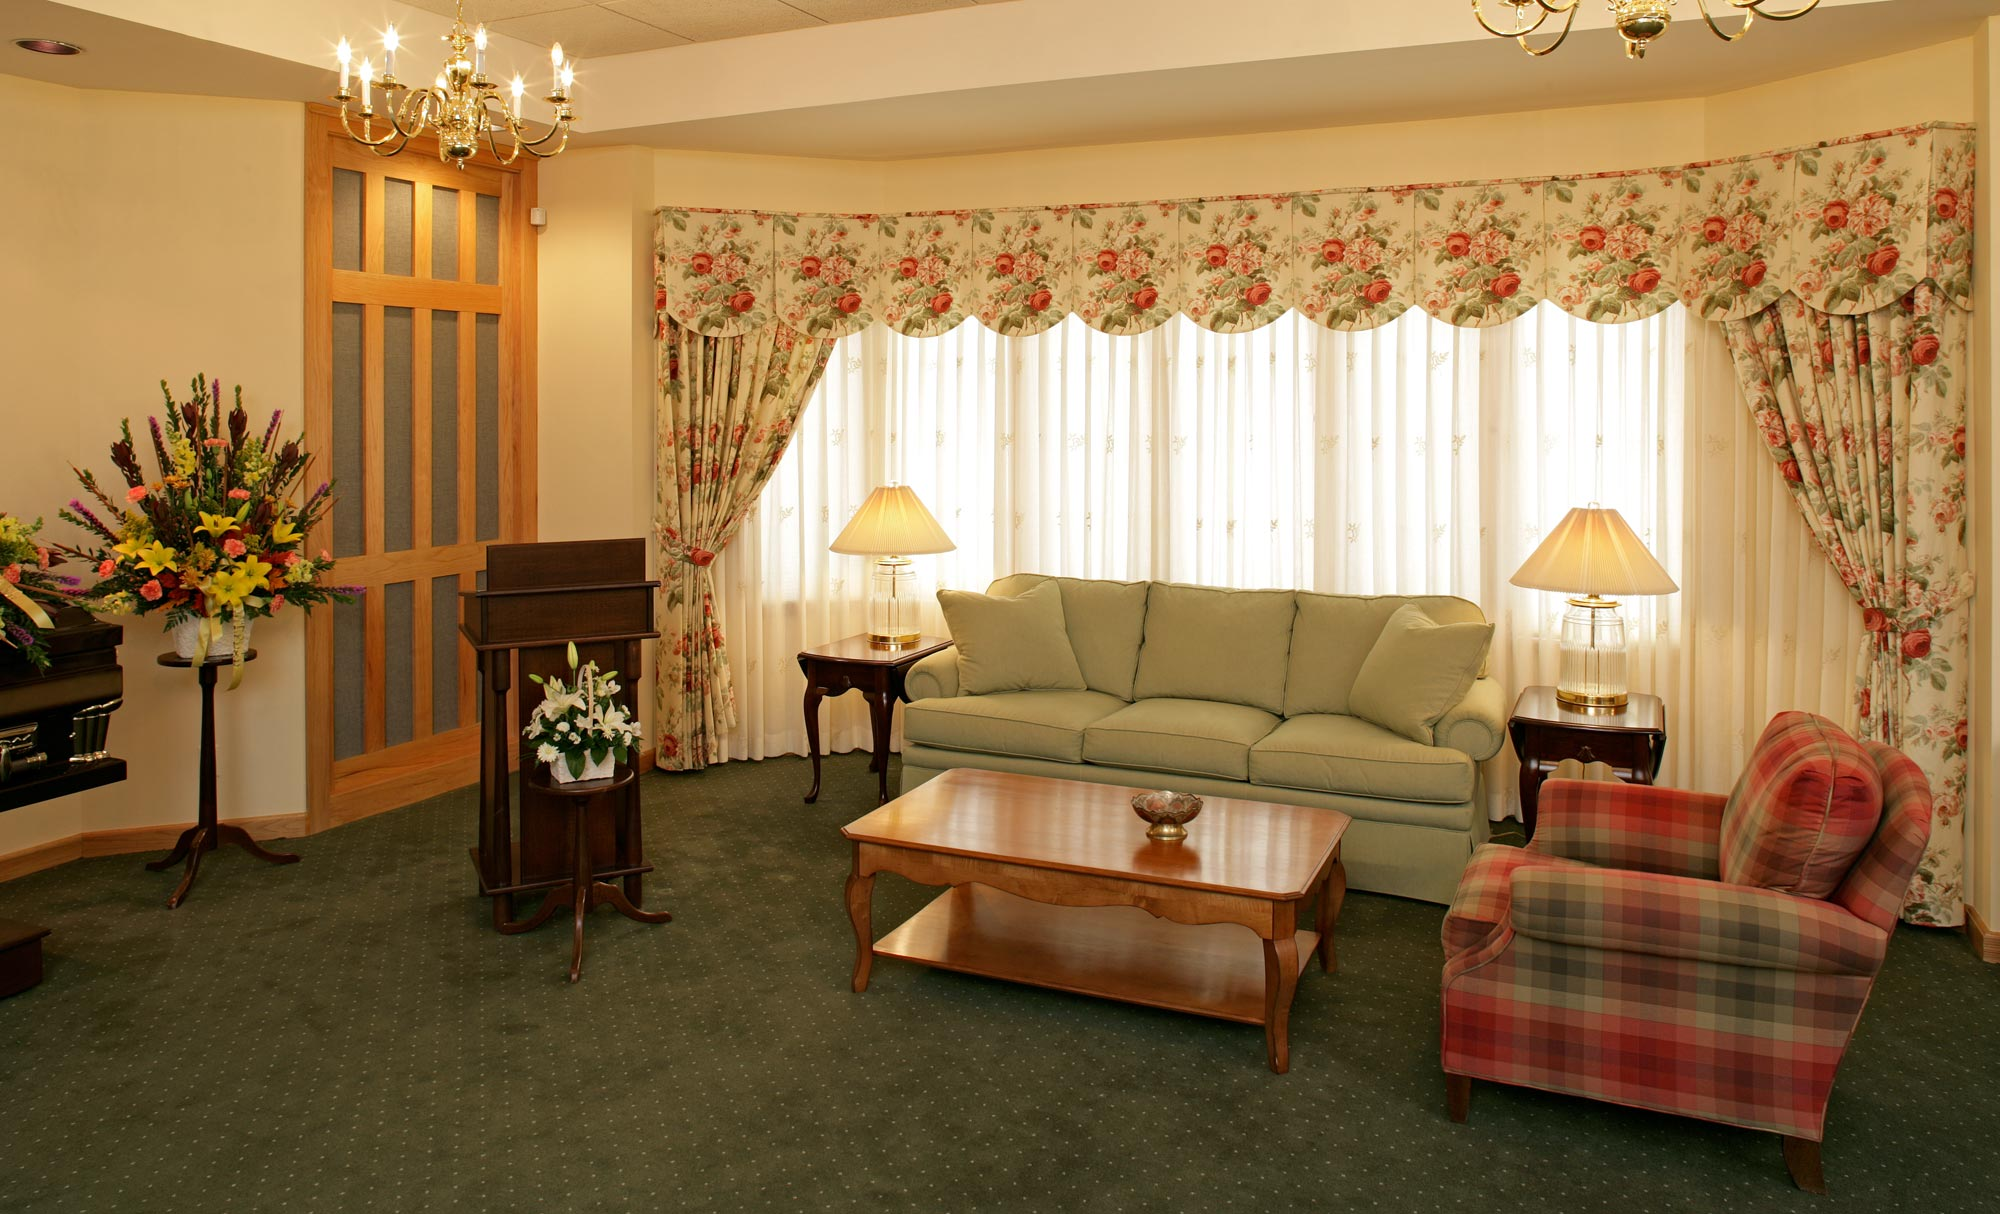 Interior design for funeral home - Living Room Style Funeral Home Interior Design Jpg